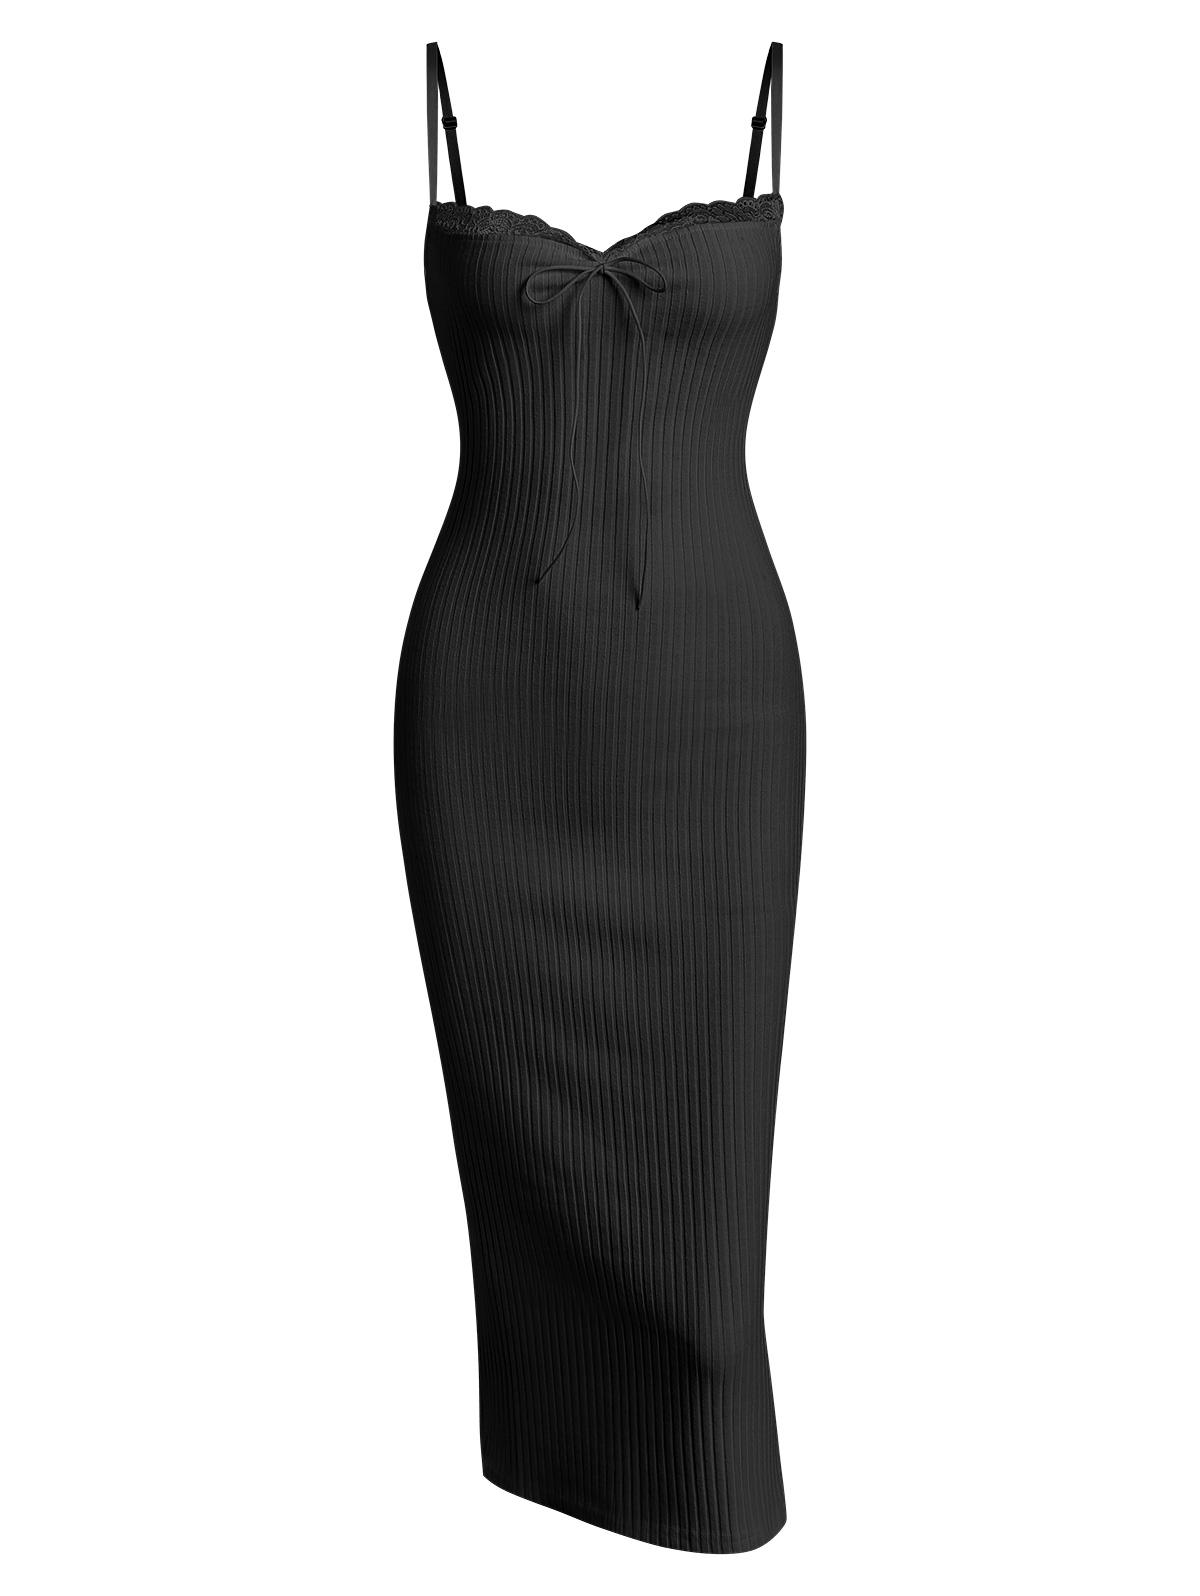 Lace Trim Ribbed Ruched Tie Collar Slinky Dress